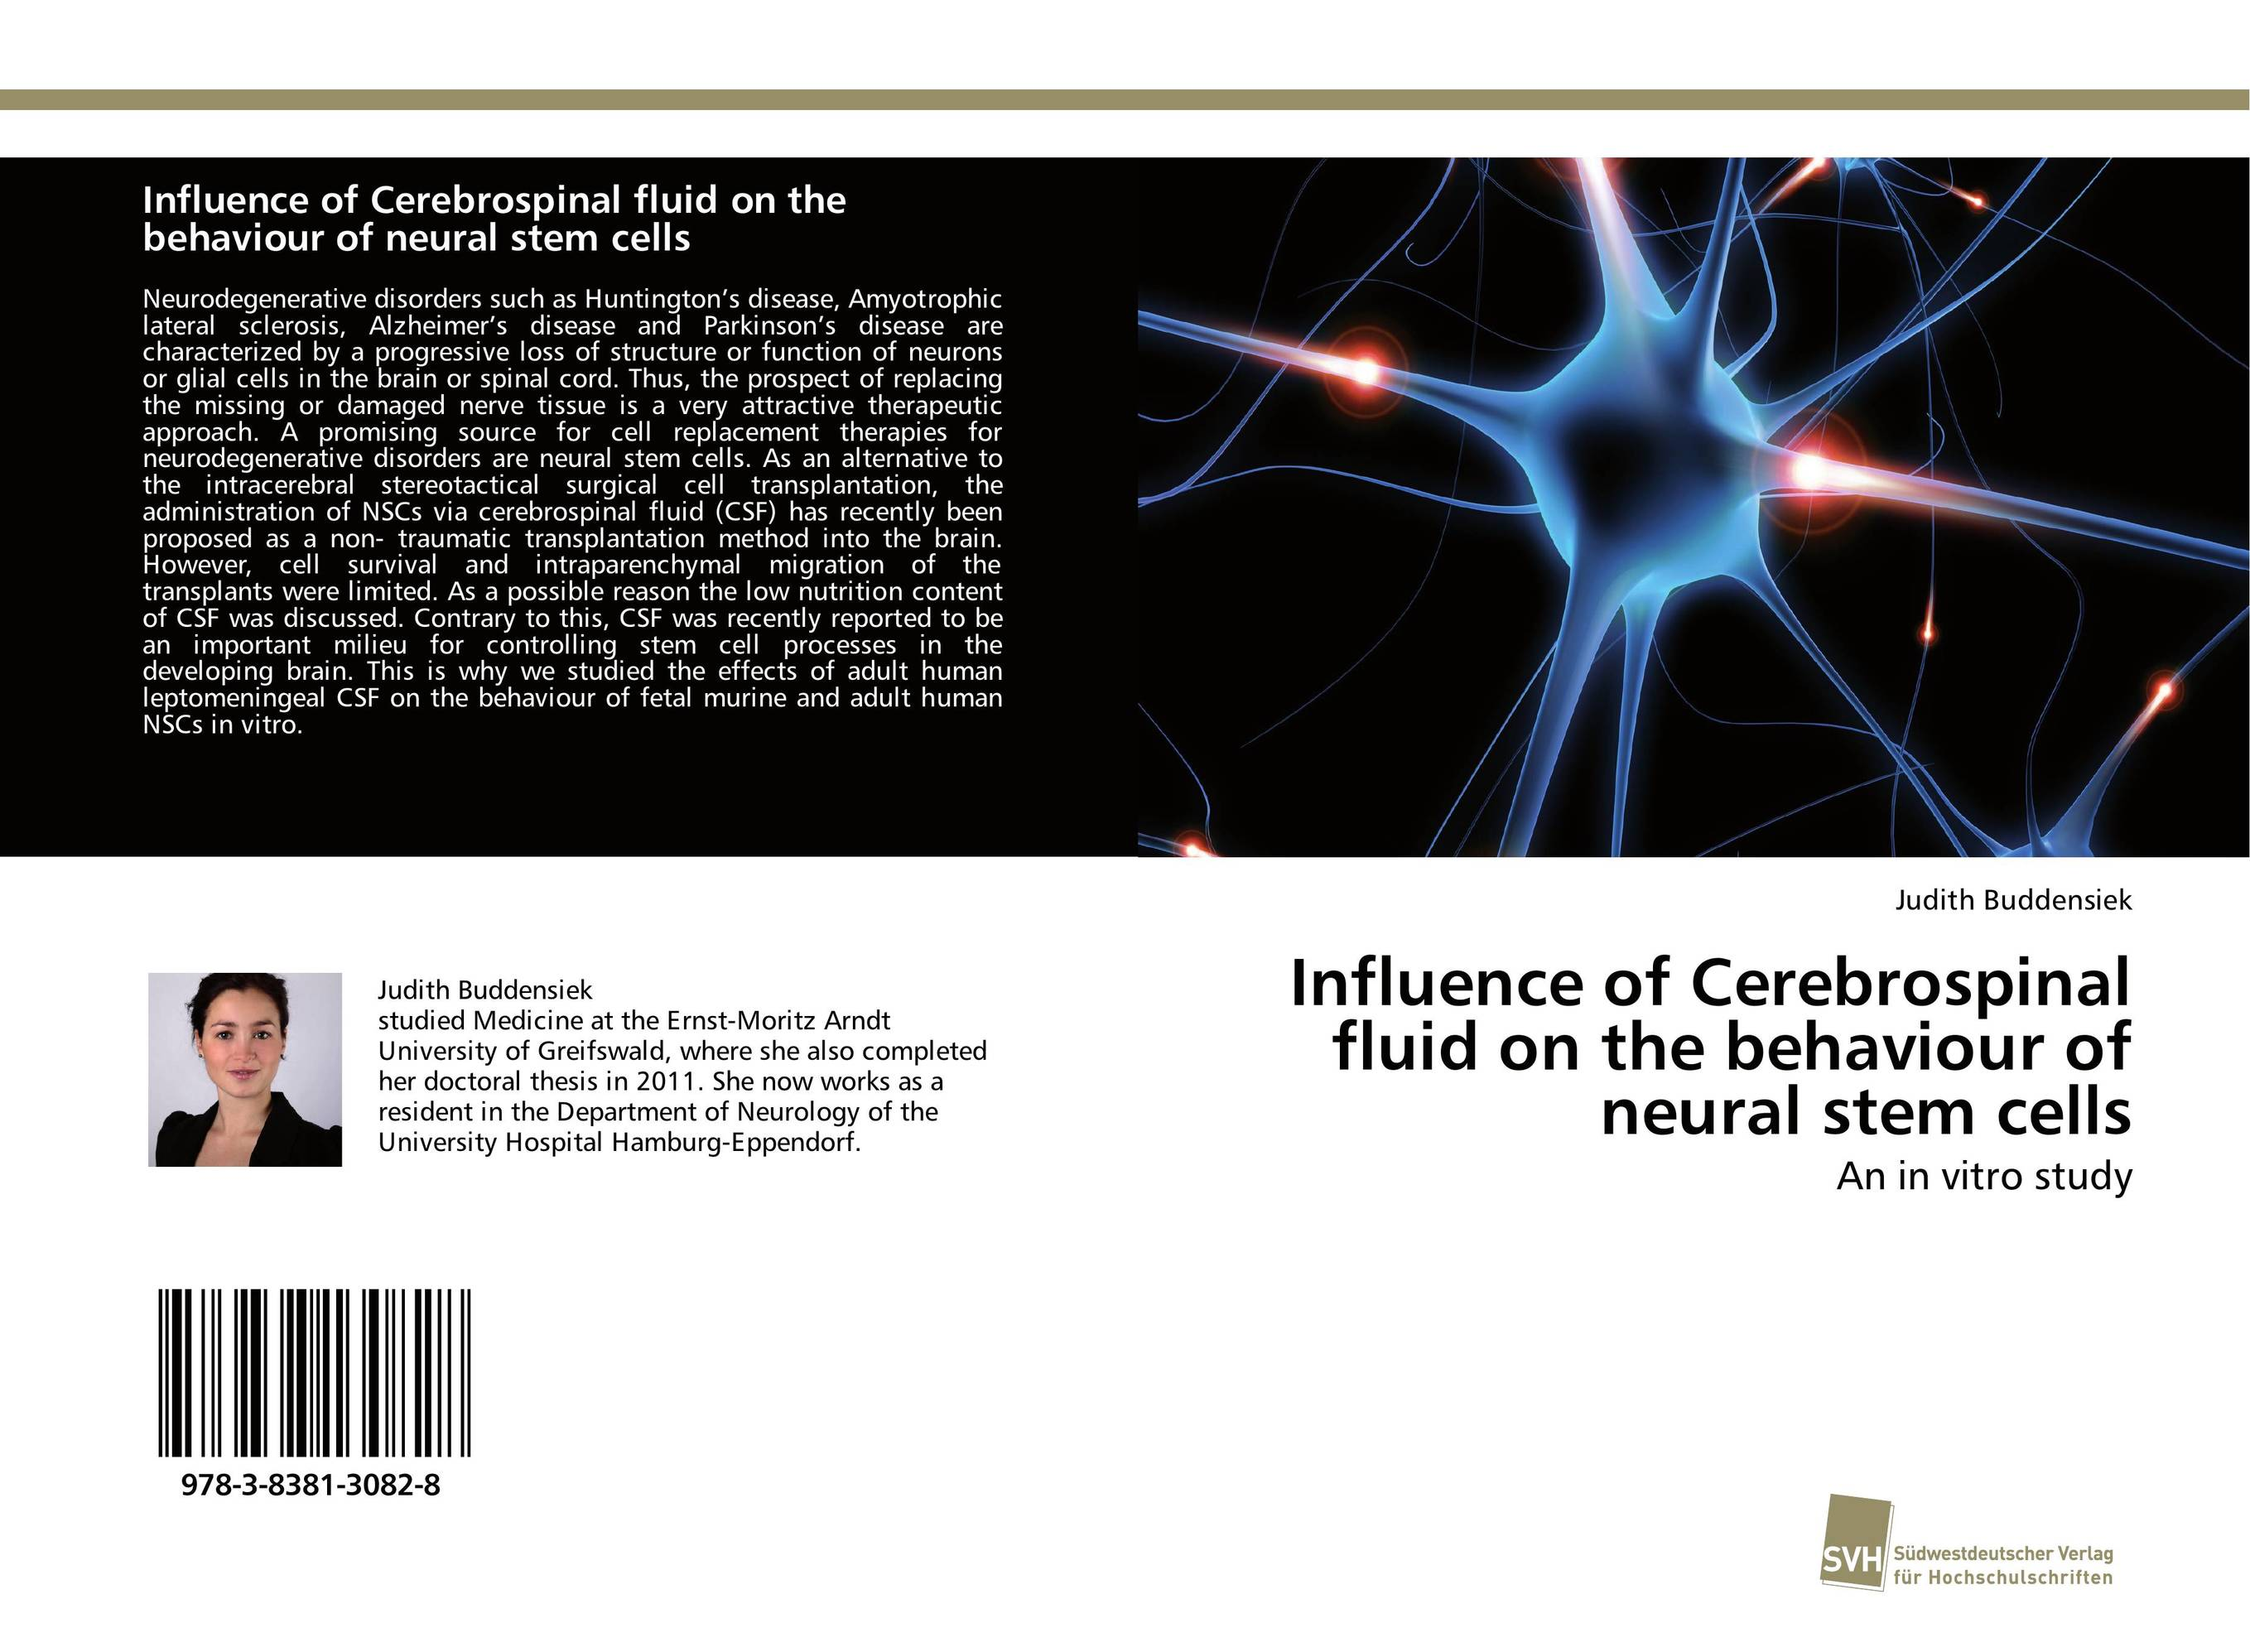 9783838130828 Influence of Cerebrospinal fluid on the behaviour al stem cells